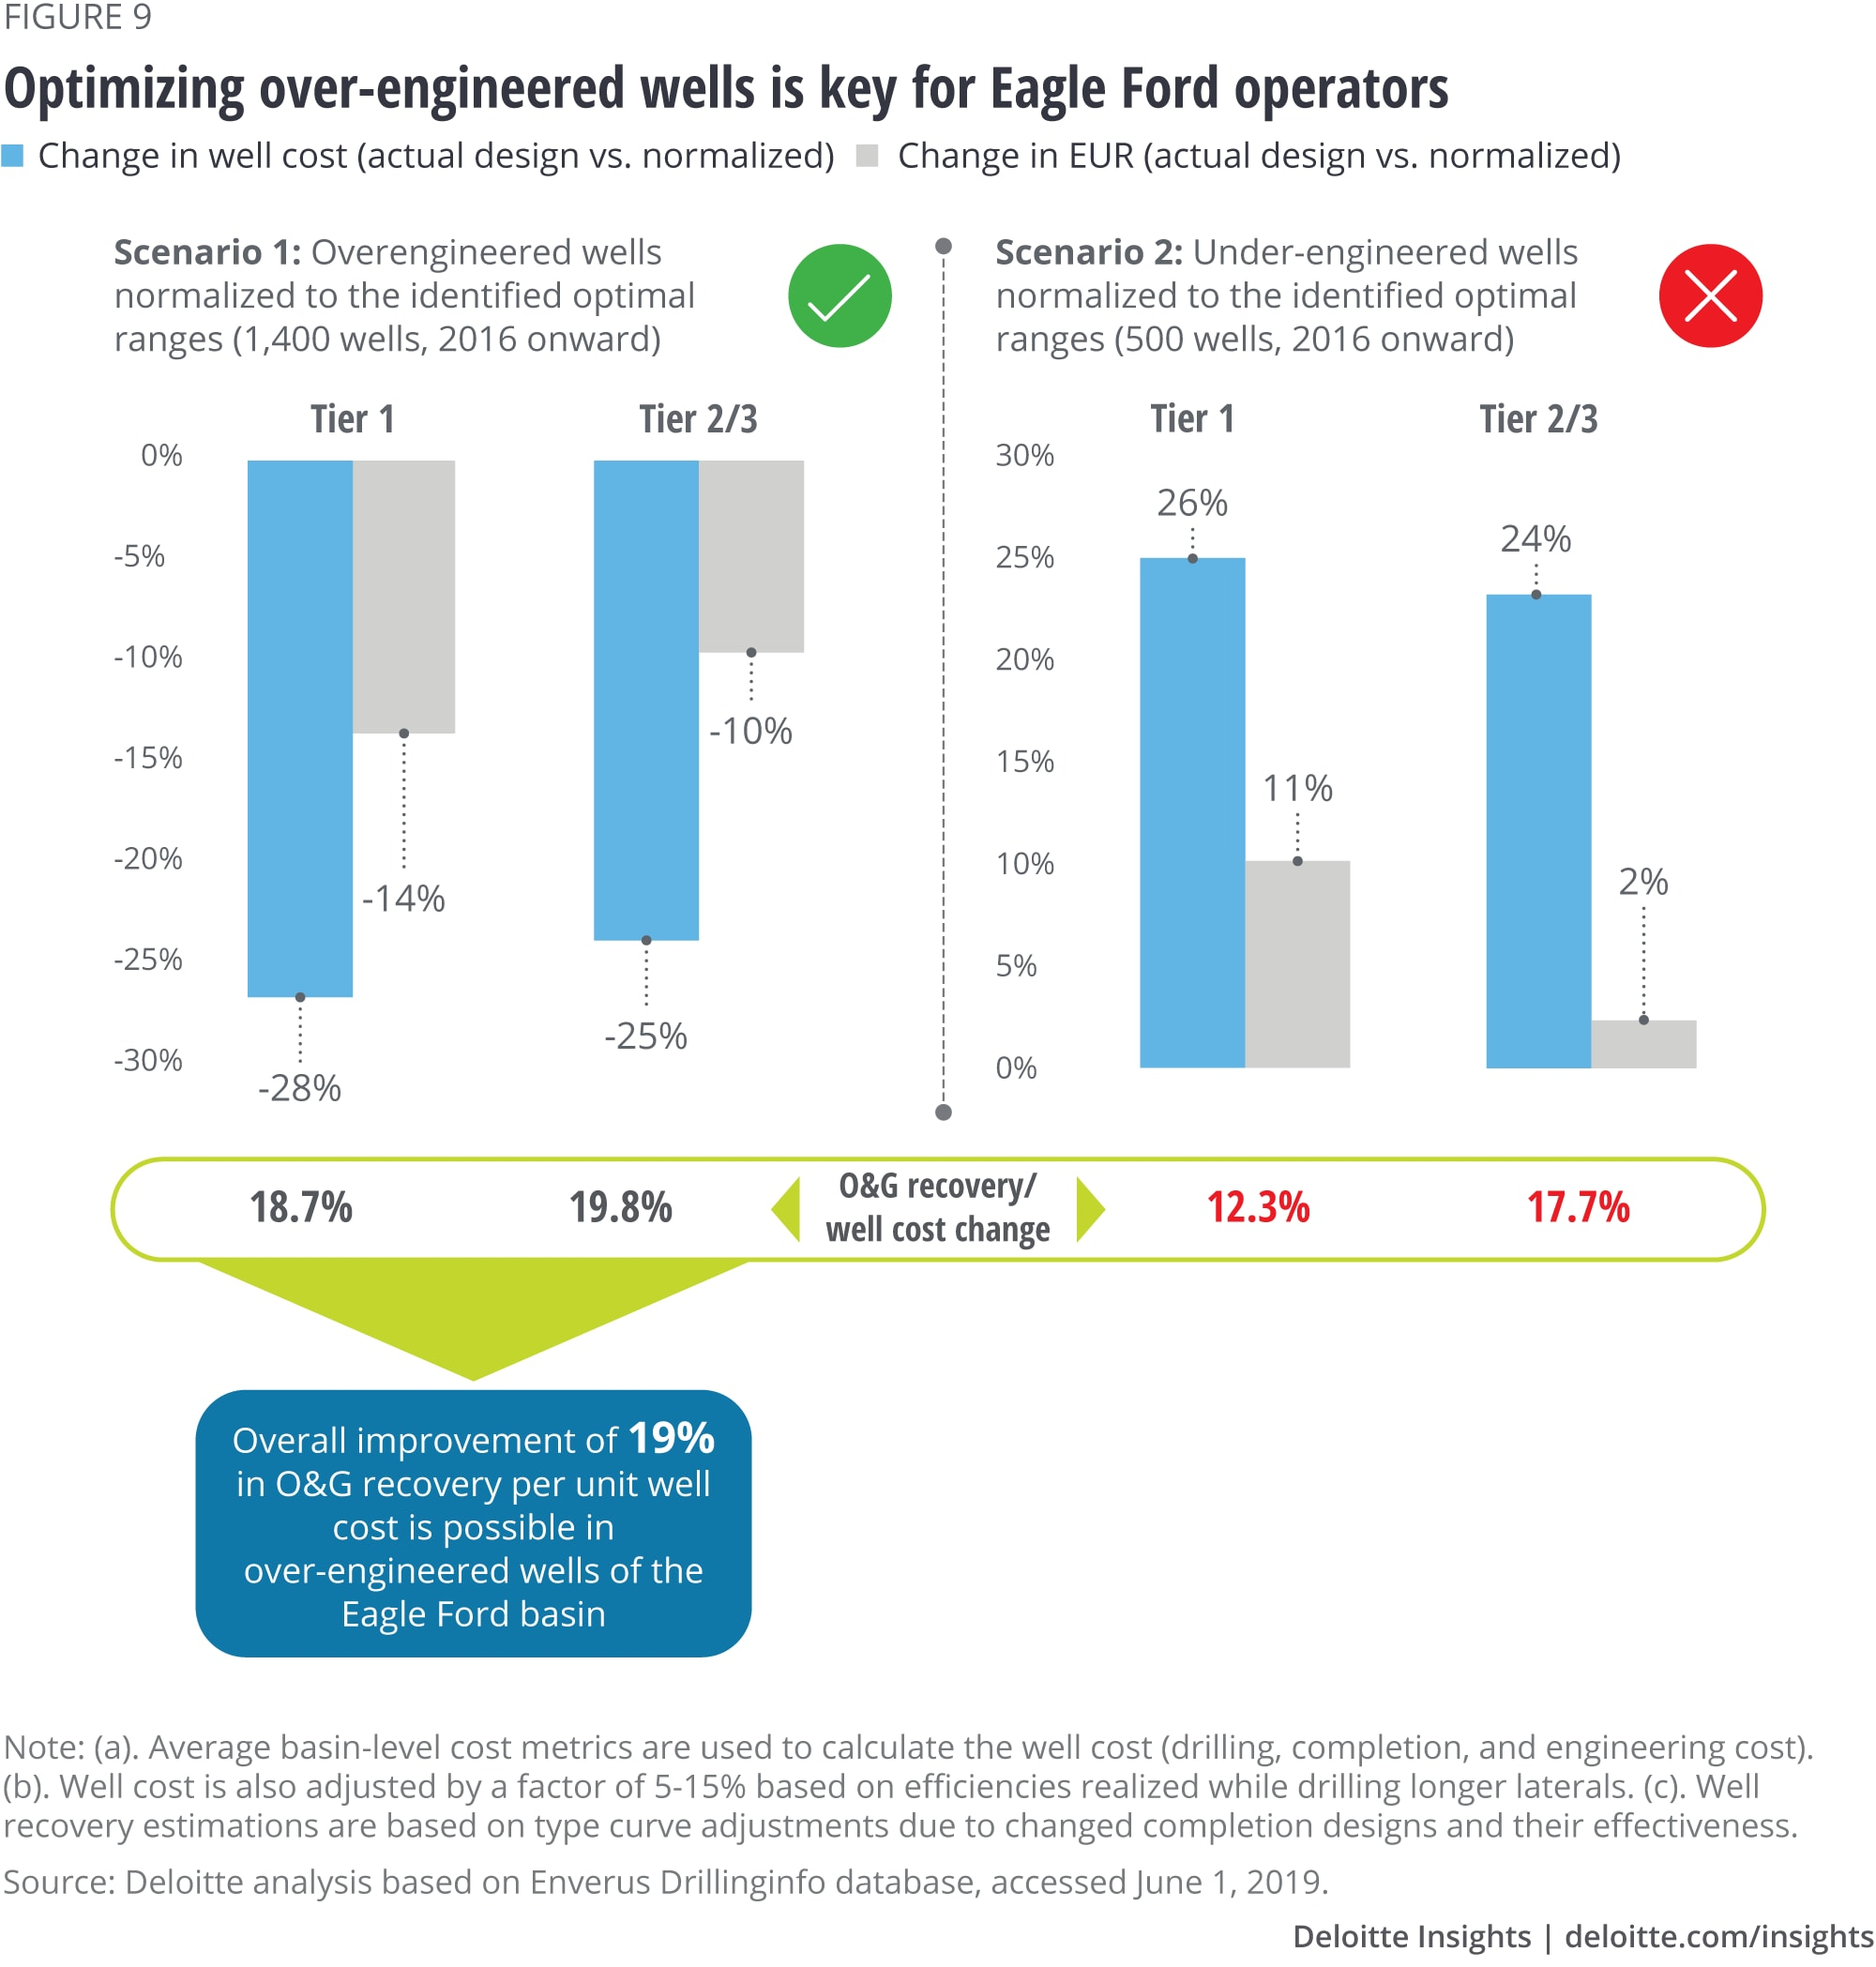 Optimizing over-engineered wells is key for Eagle Ford operators